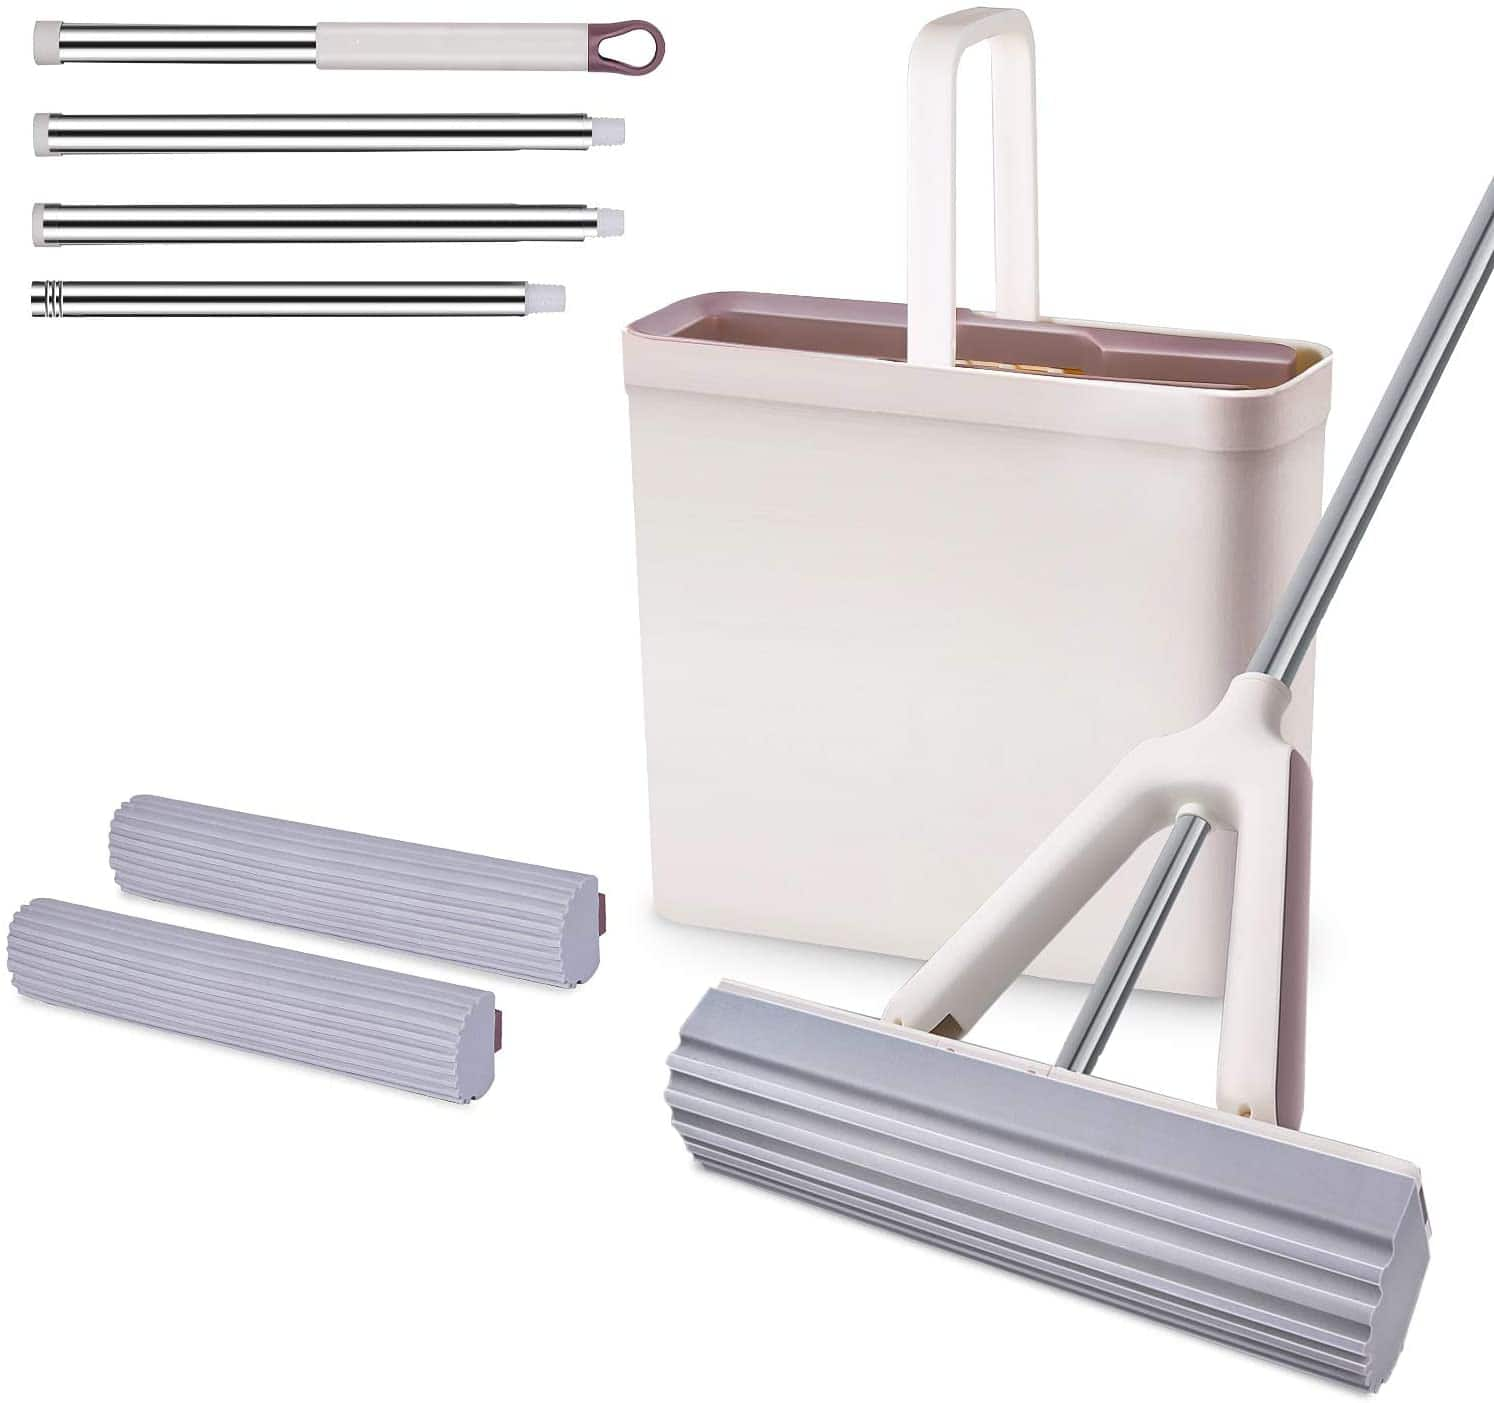 Sponge Mop and Bucket Set with 2 Pcs Self Cleaning & Super Absorbent PVA Sponge Hands - Free Mop Heads, 4 Extendable Handles for Hardwood $19.99 + FS